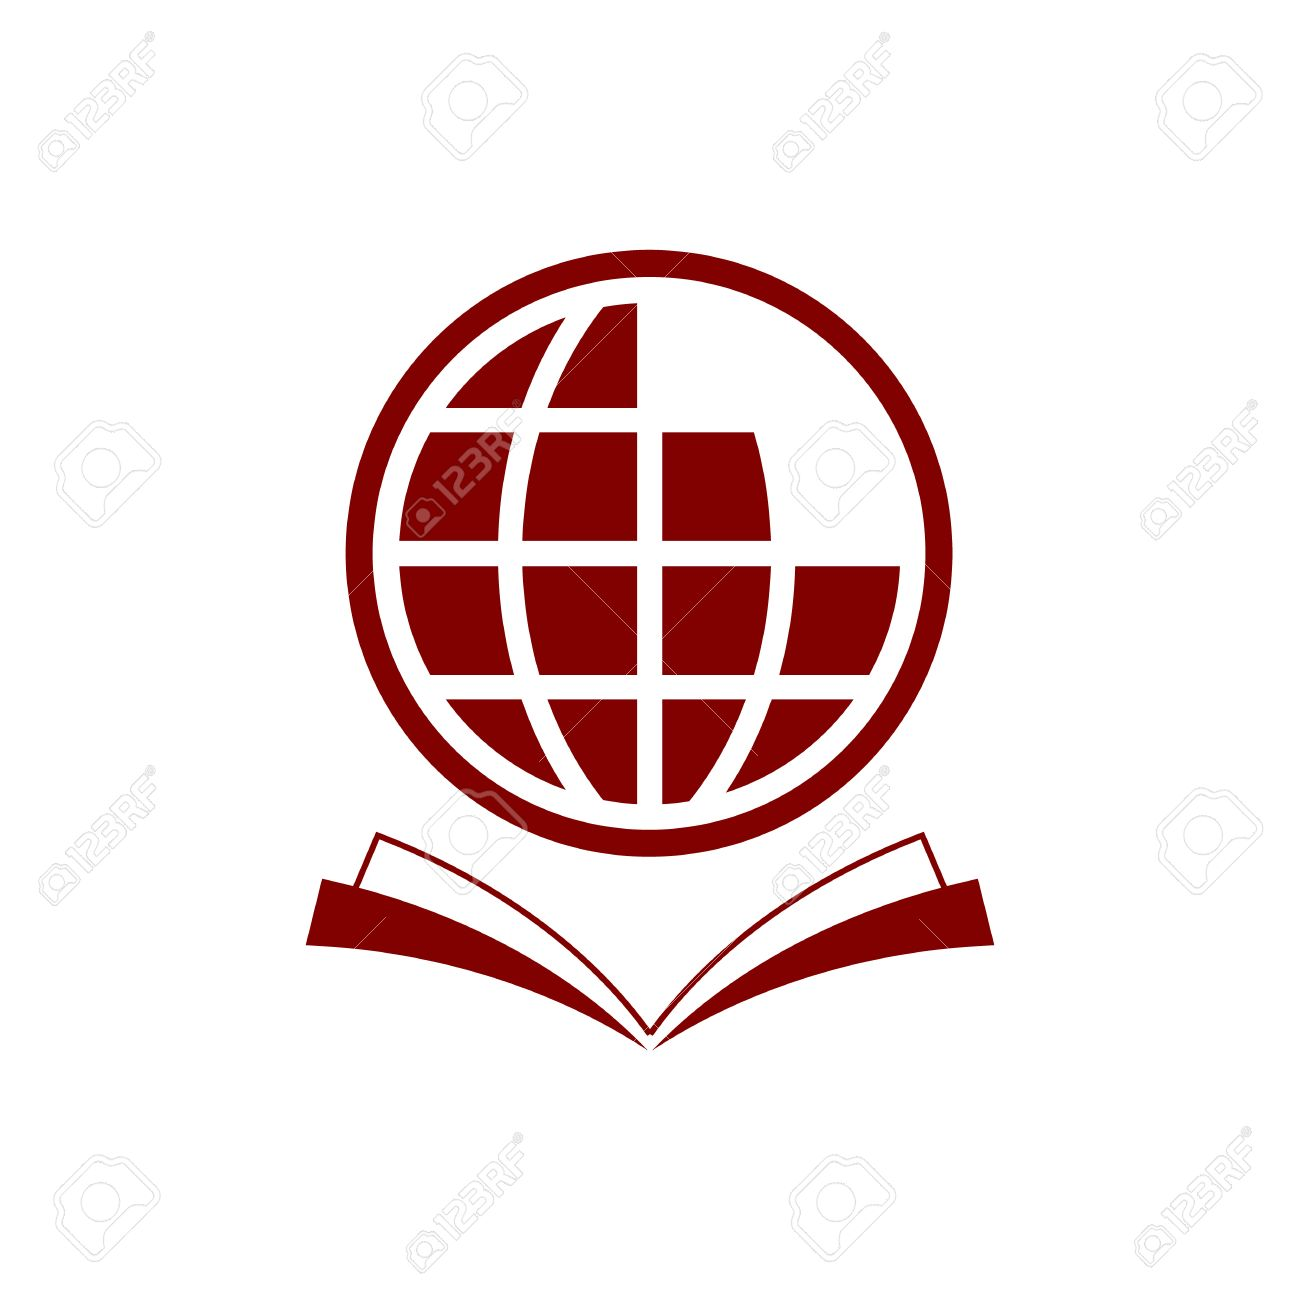 A symbol in literature book spine spines of books icon symbol of a news icons world globe symbols open book sign education world globe symbols open book sign education biocorpaavc Gallery